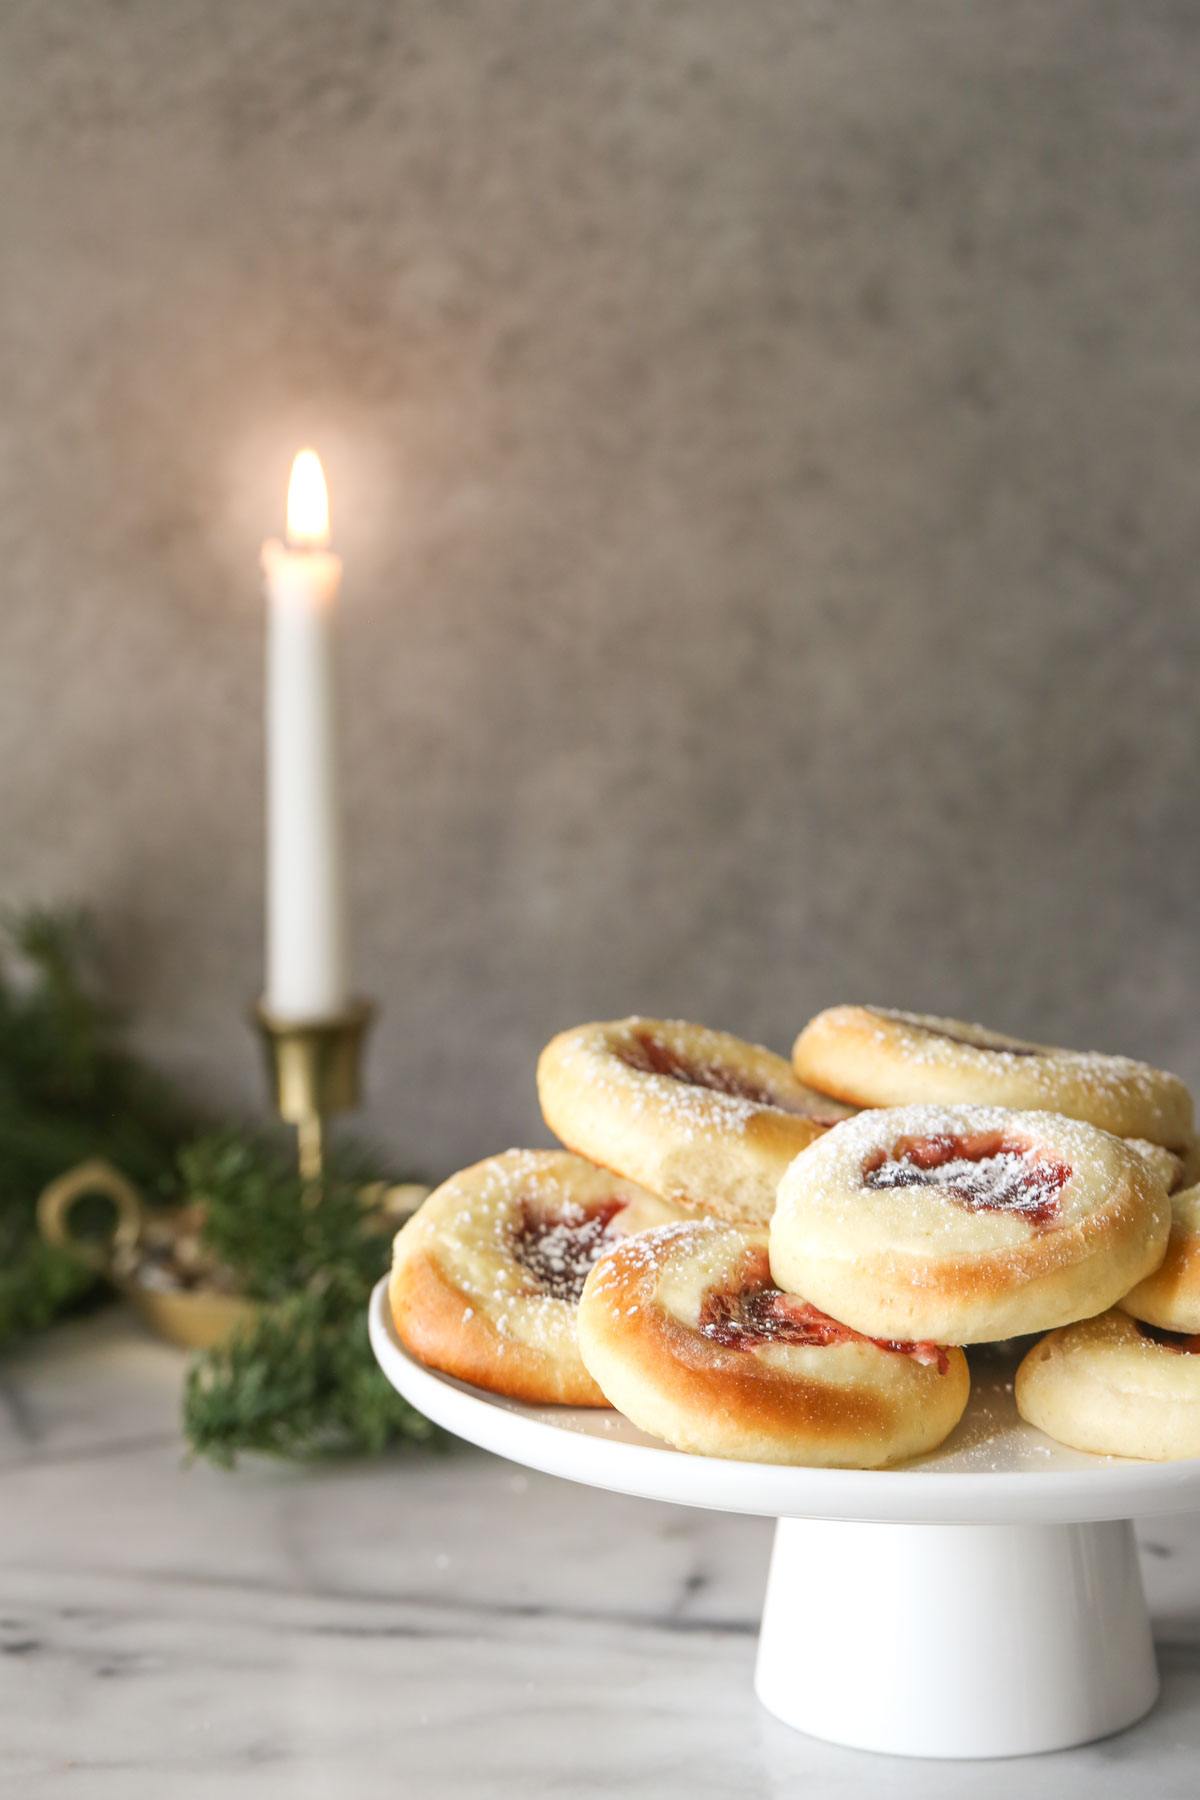 Raspberry Cream Cheese Kolaches arranged on a cake stand, with a candle burning in the background.